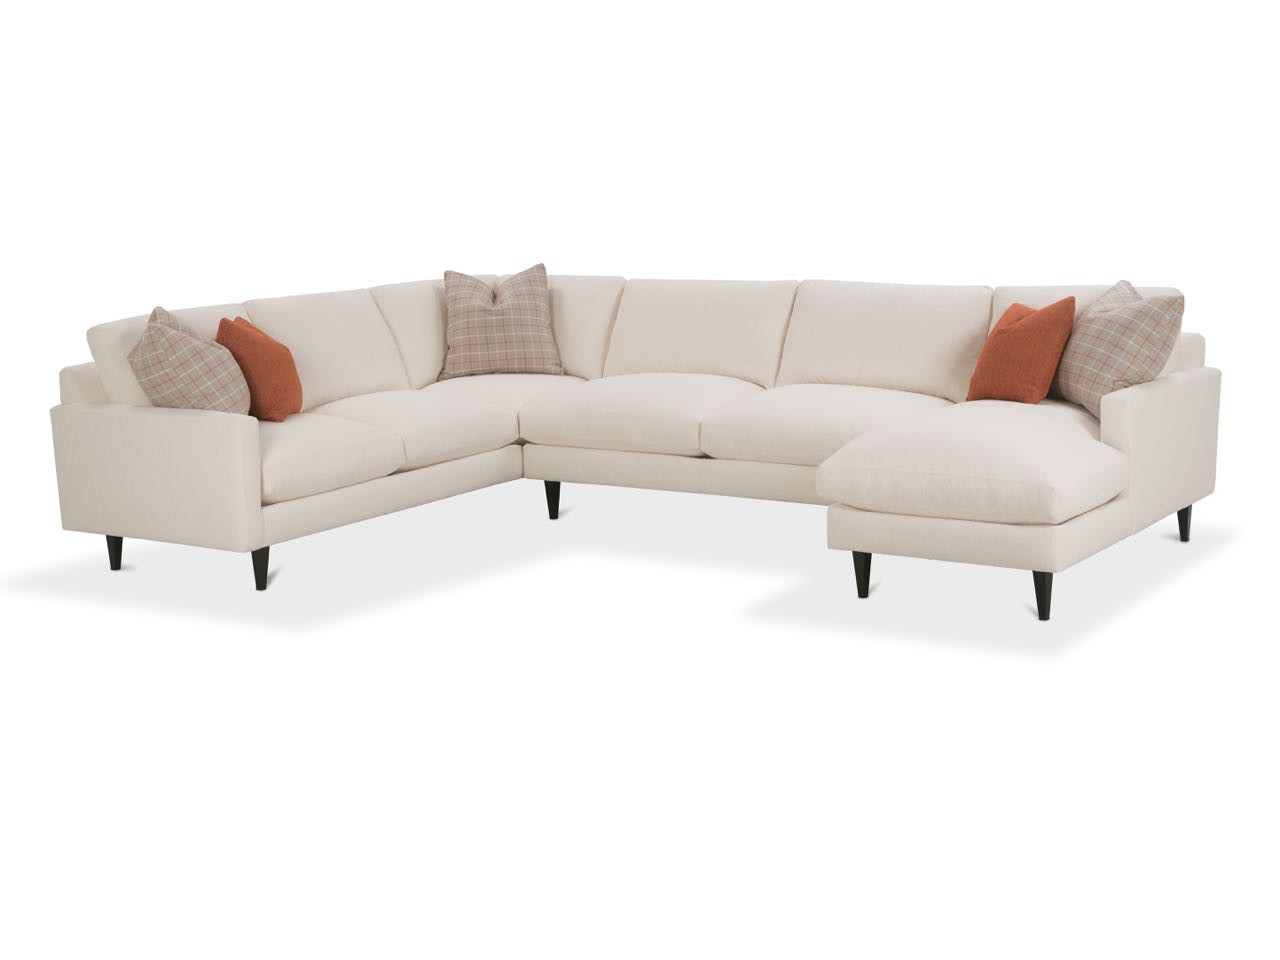 Sensational Elson Sectional Upholstered Sectionals Sofas Sectionals Uwap Interior Chair Design Uwaporg